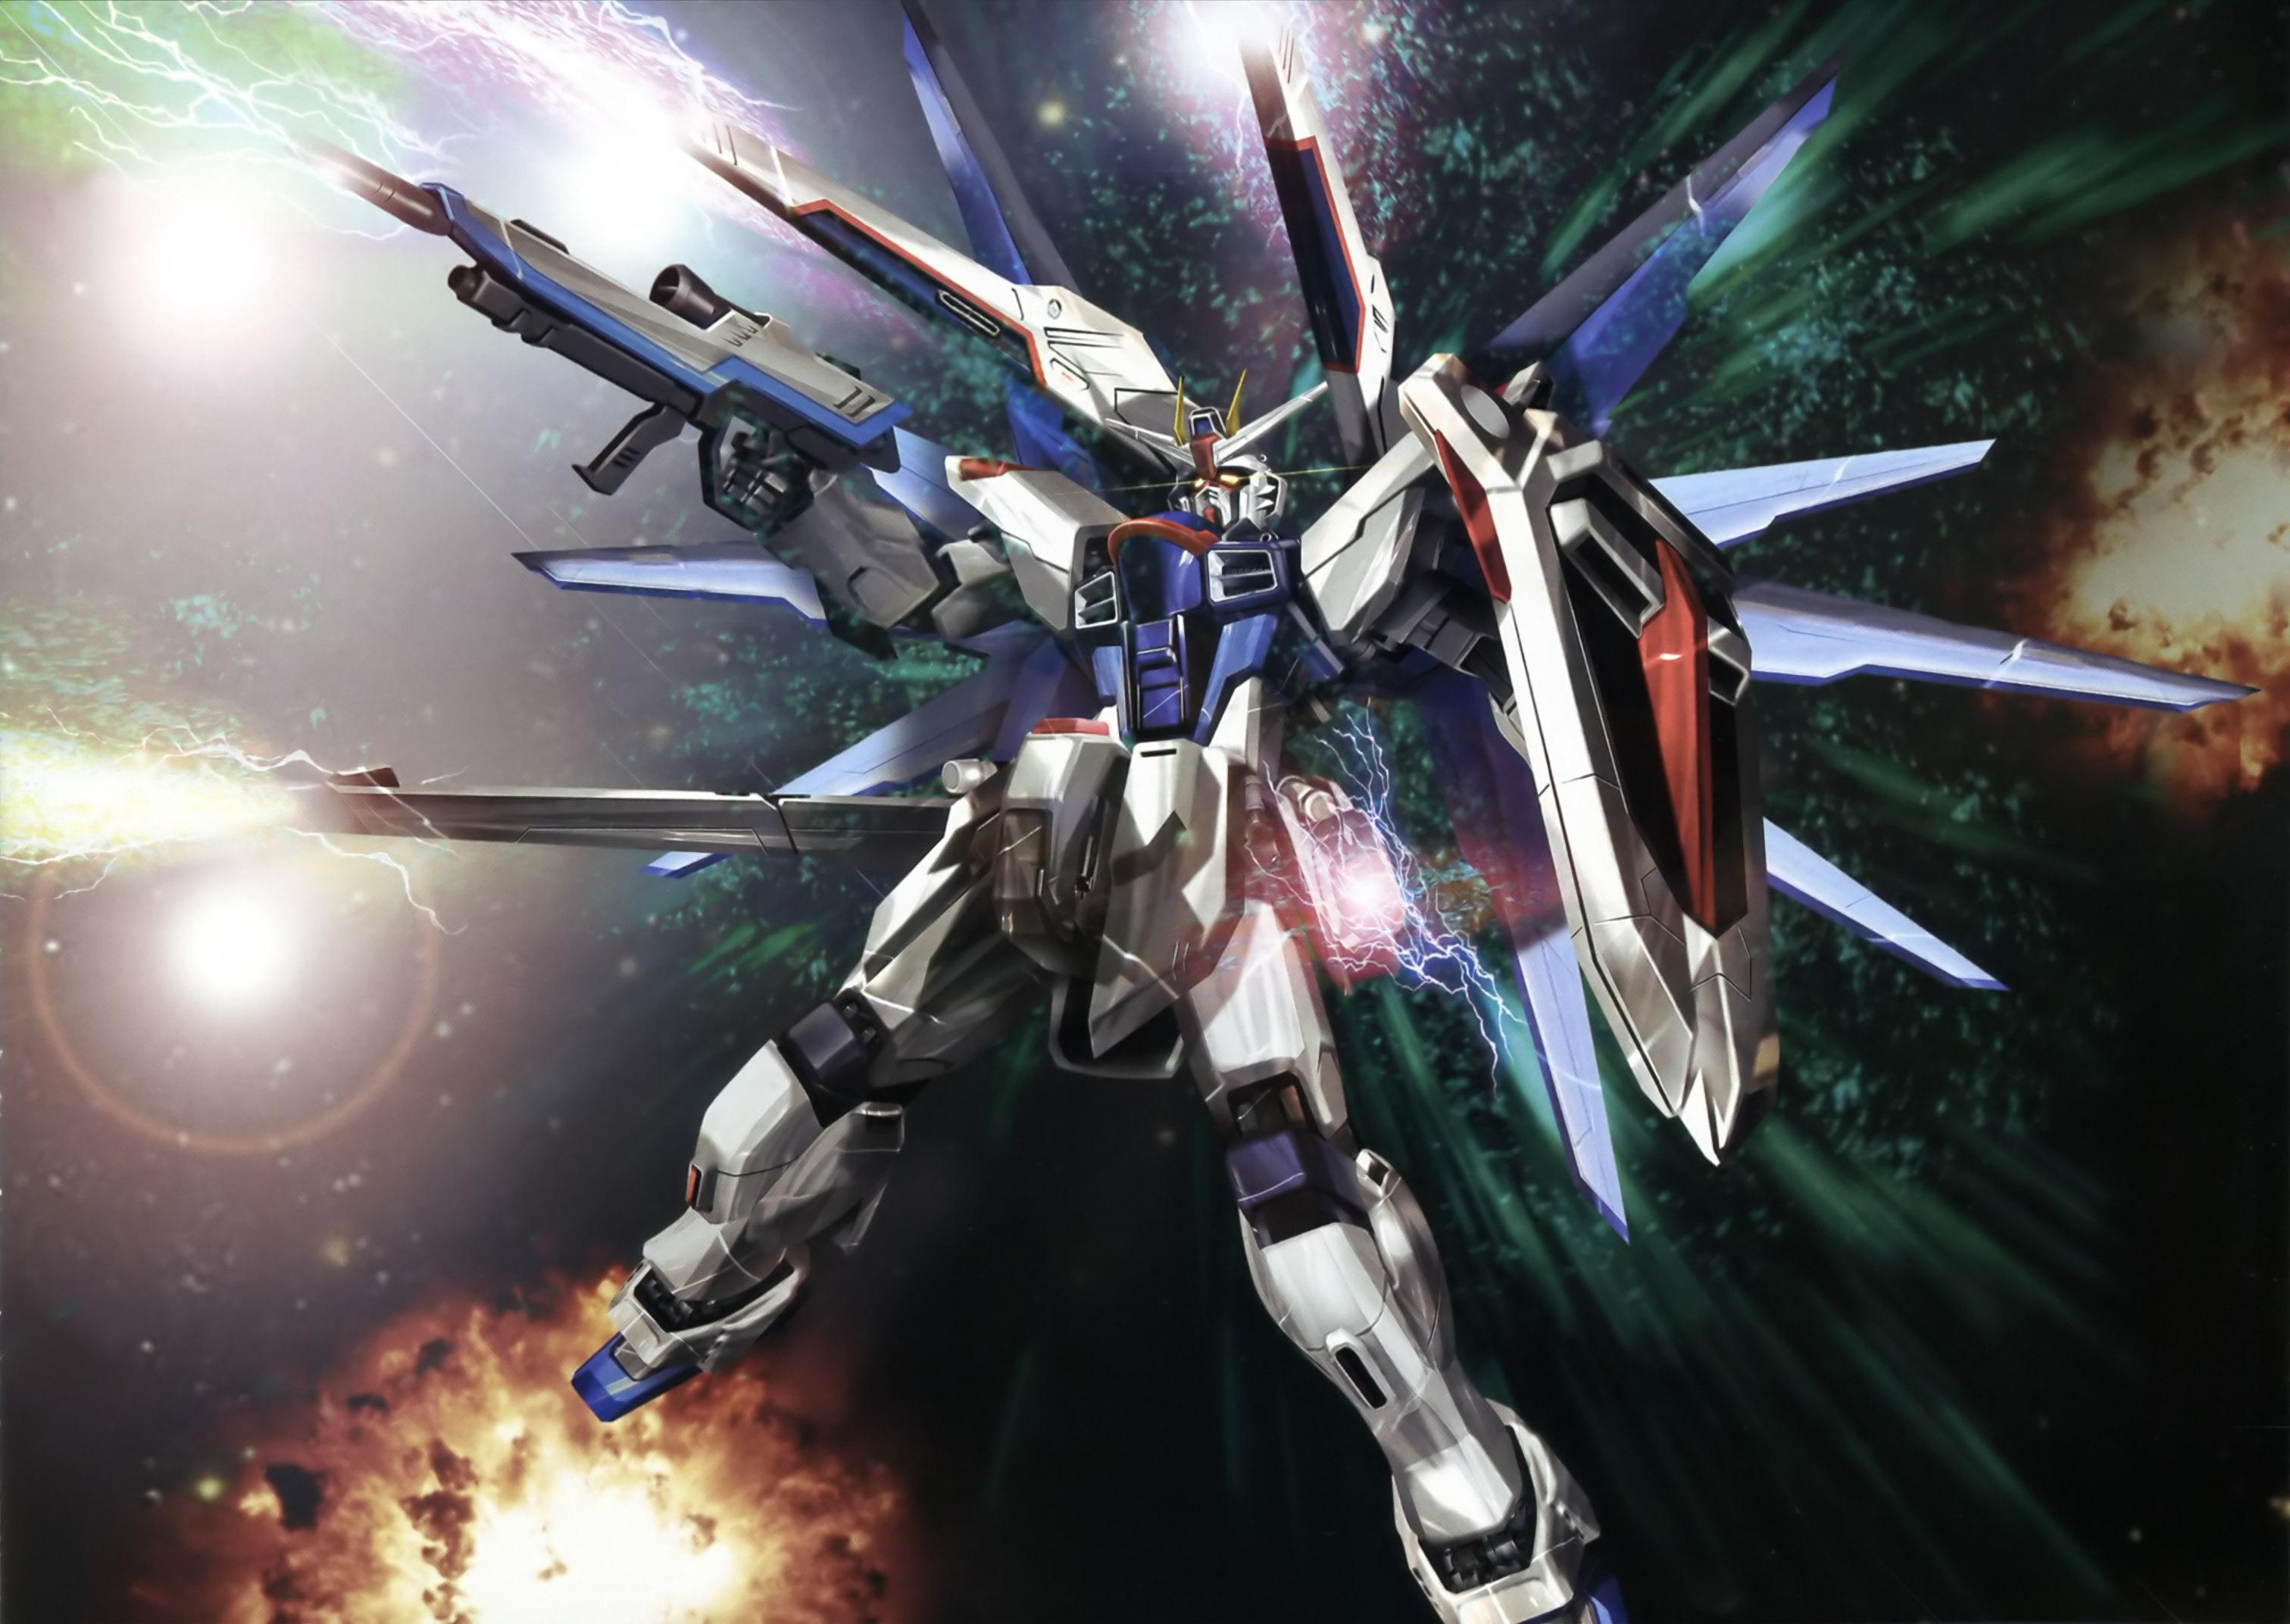 Post your favourite Gundam Wallpapers (image warning) - Anime and